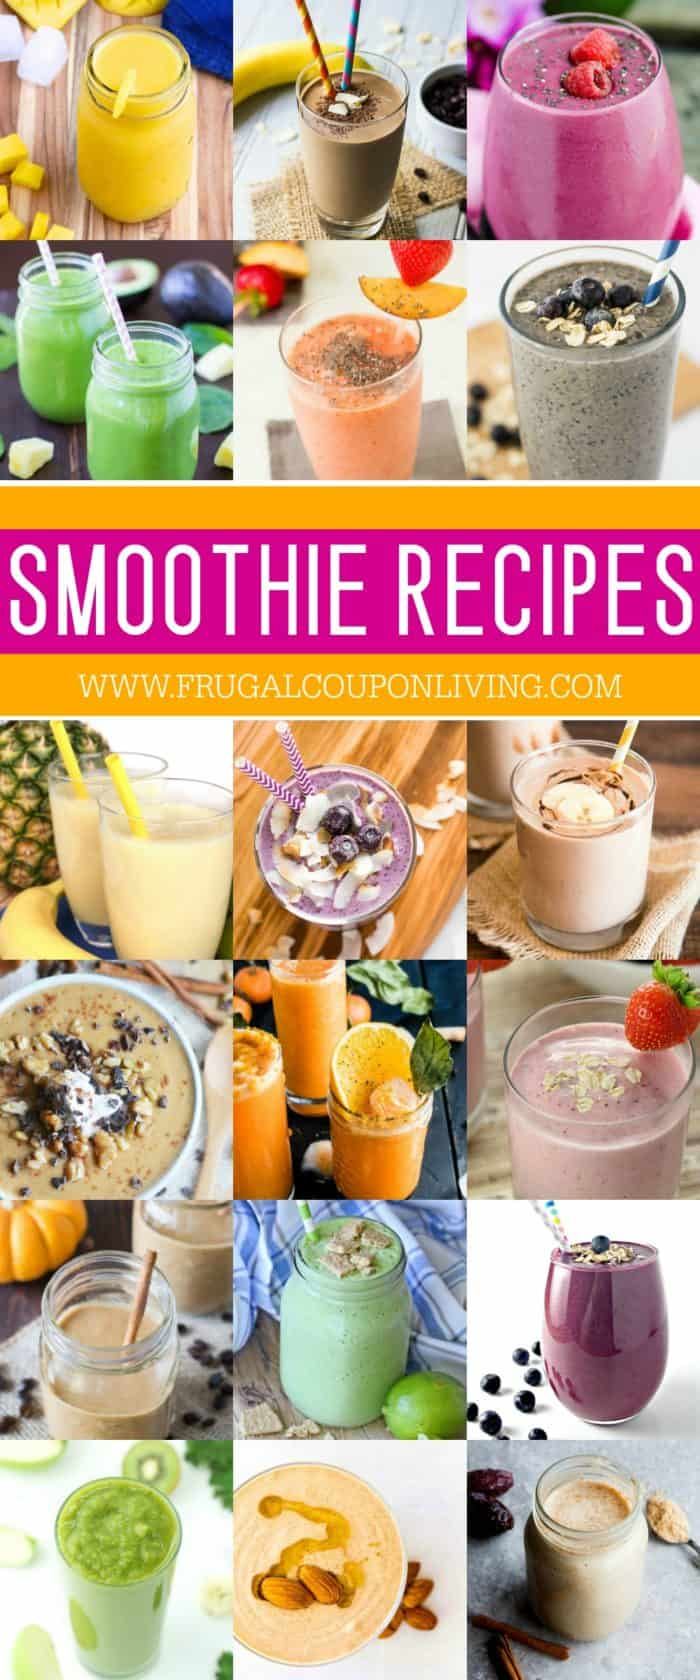 Healthy Smoothie Recipes and Tips from a Smoothie Expert #recipes #smoothie #smoothierecipes #healthyrecipes #workoutrecipes #drinkrecipes #milkshake #milkshakerecipes #FrugalCouponLiving